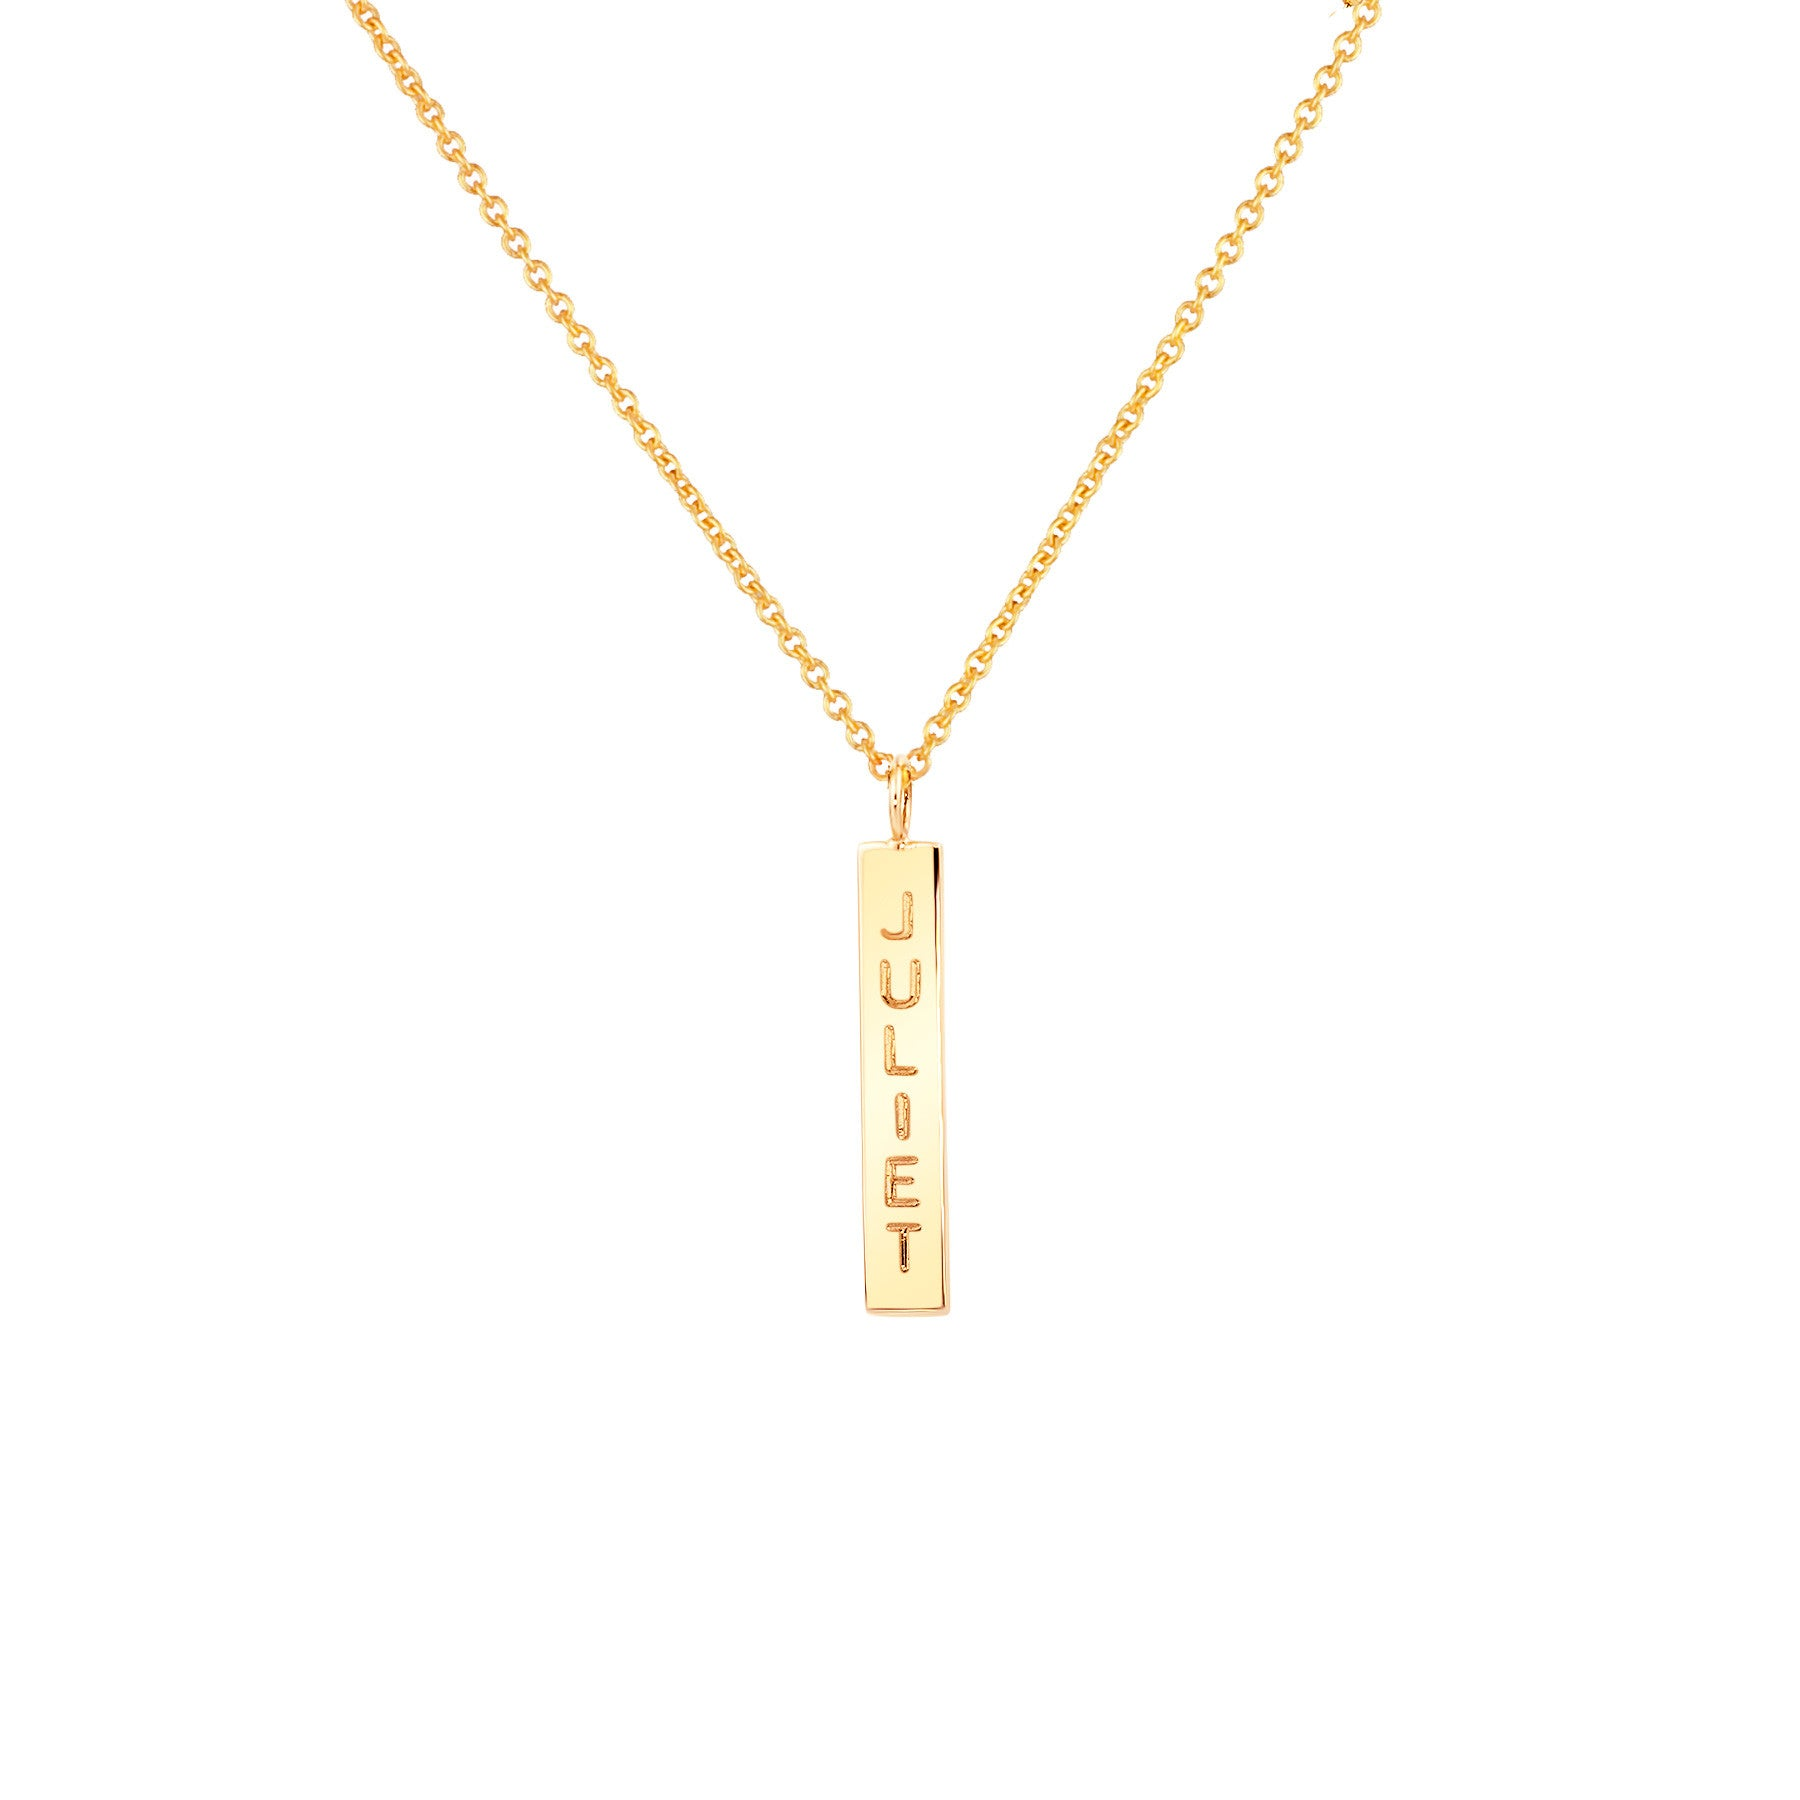 LARGE NAME DROP NECKLACE 14K